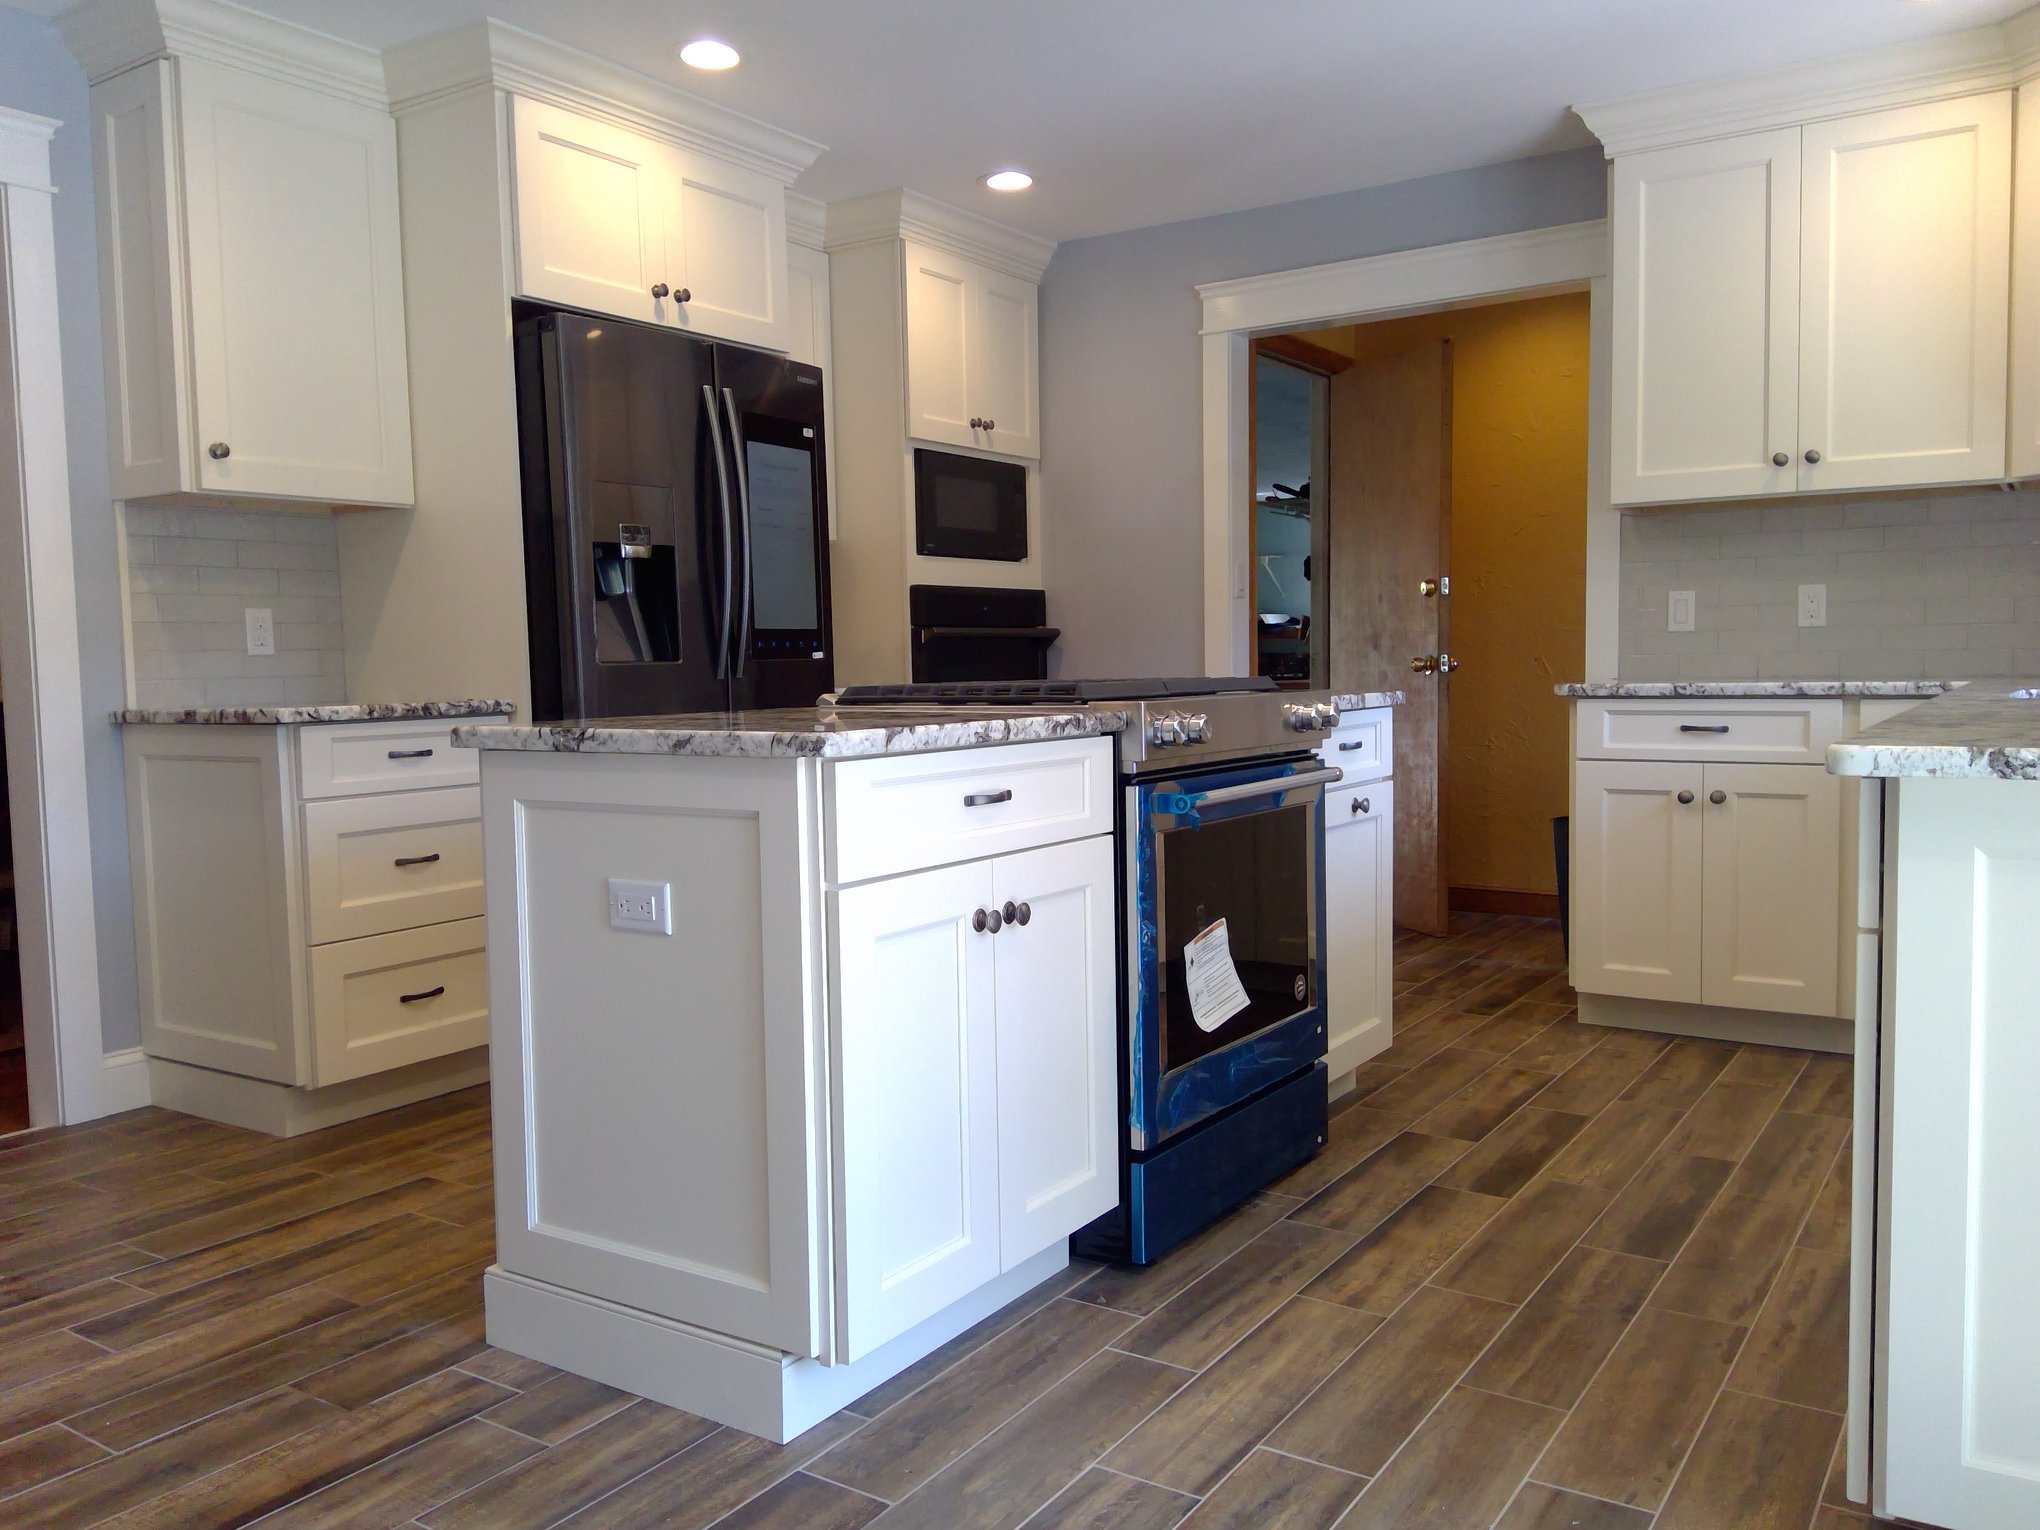 Kitchen Remodel In West Milford New Jersey Msk Sons Construction